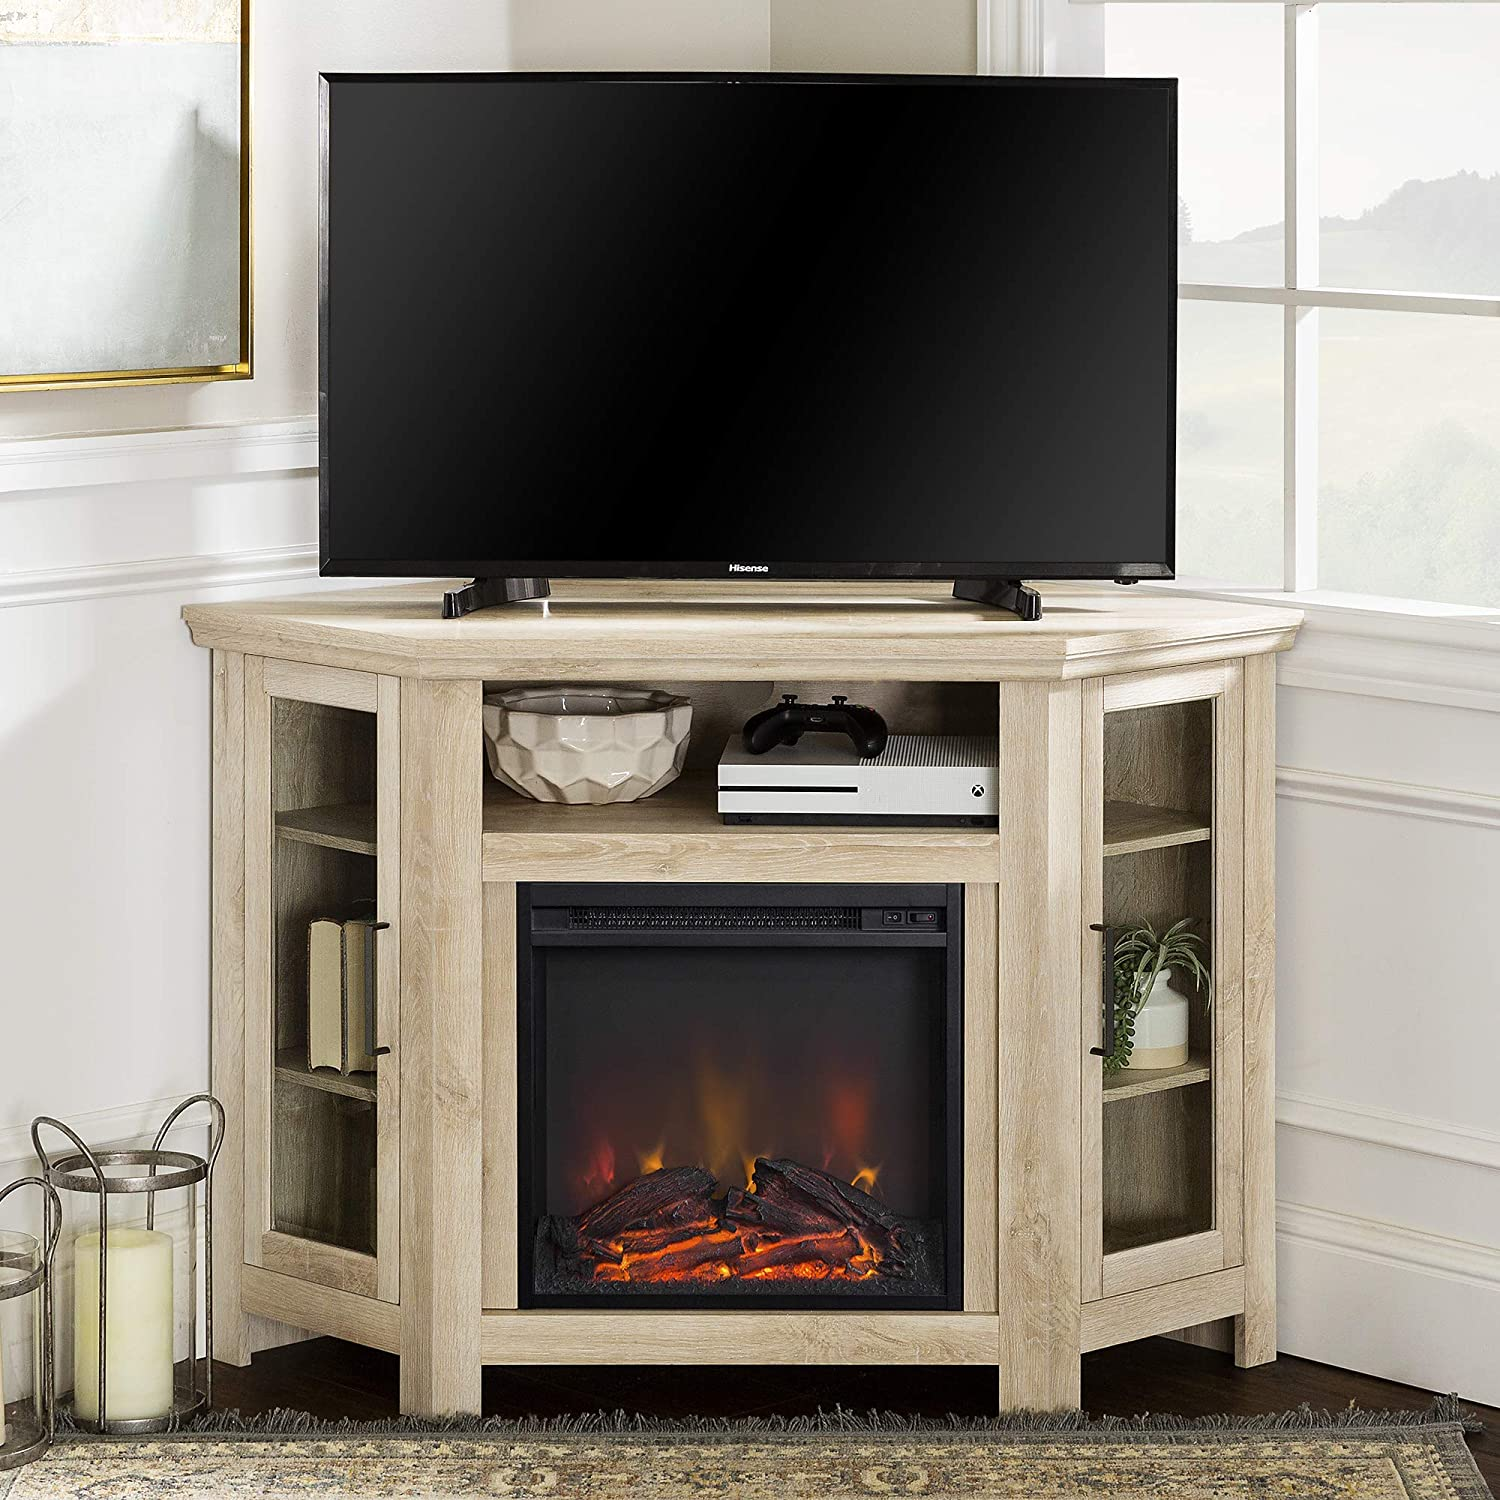 Amazon Com Walker Edison Alcott Classic Glass Door Fireplace Corner Tv Stand For Tvs Up To 55 Inches 48 Inch White Oak Furniture Decor